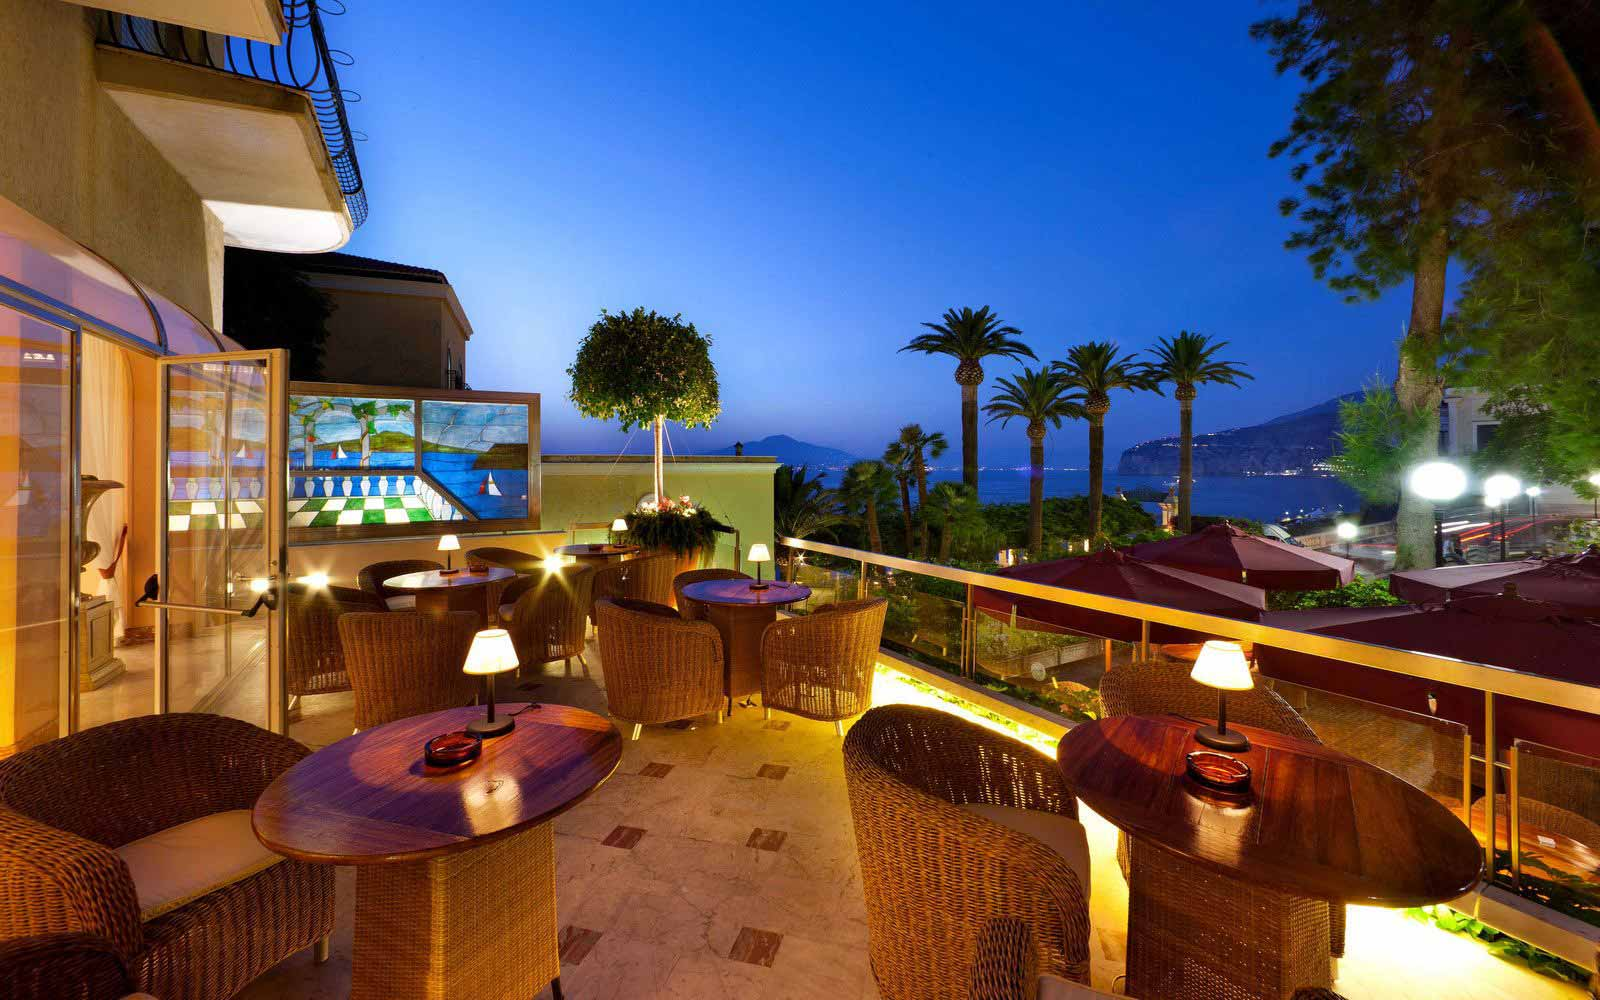 Evening drinks on the terrace at Hotel Continental Sorrento at night